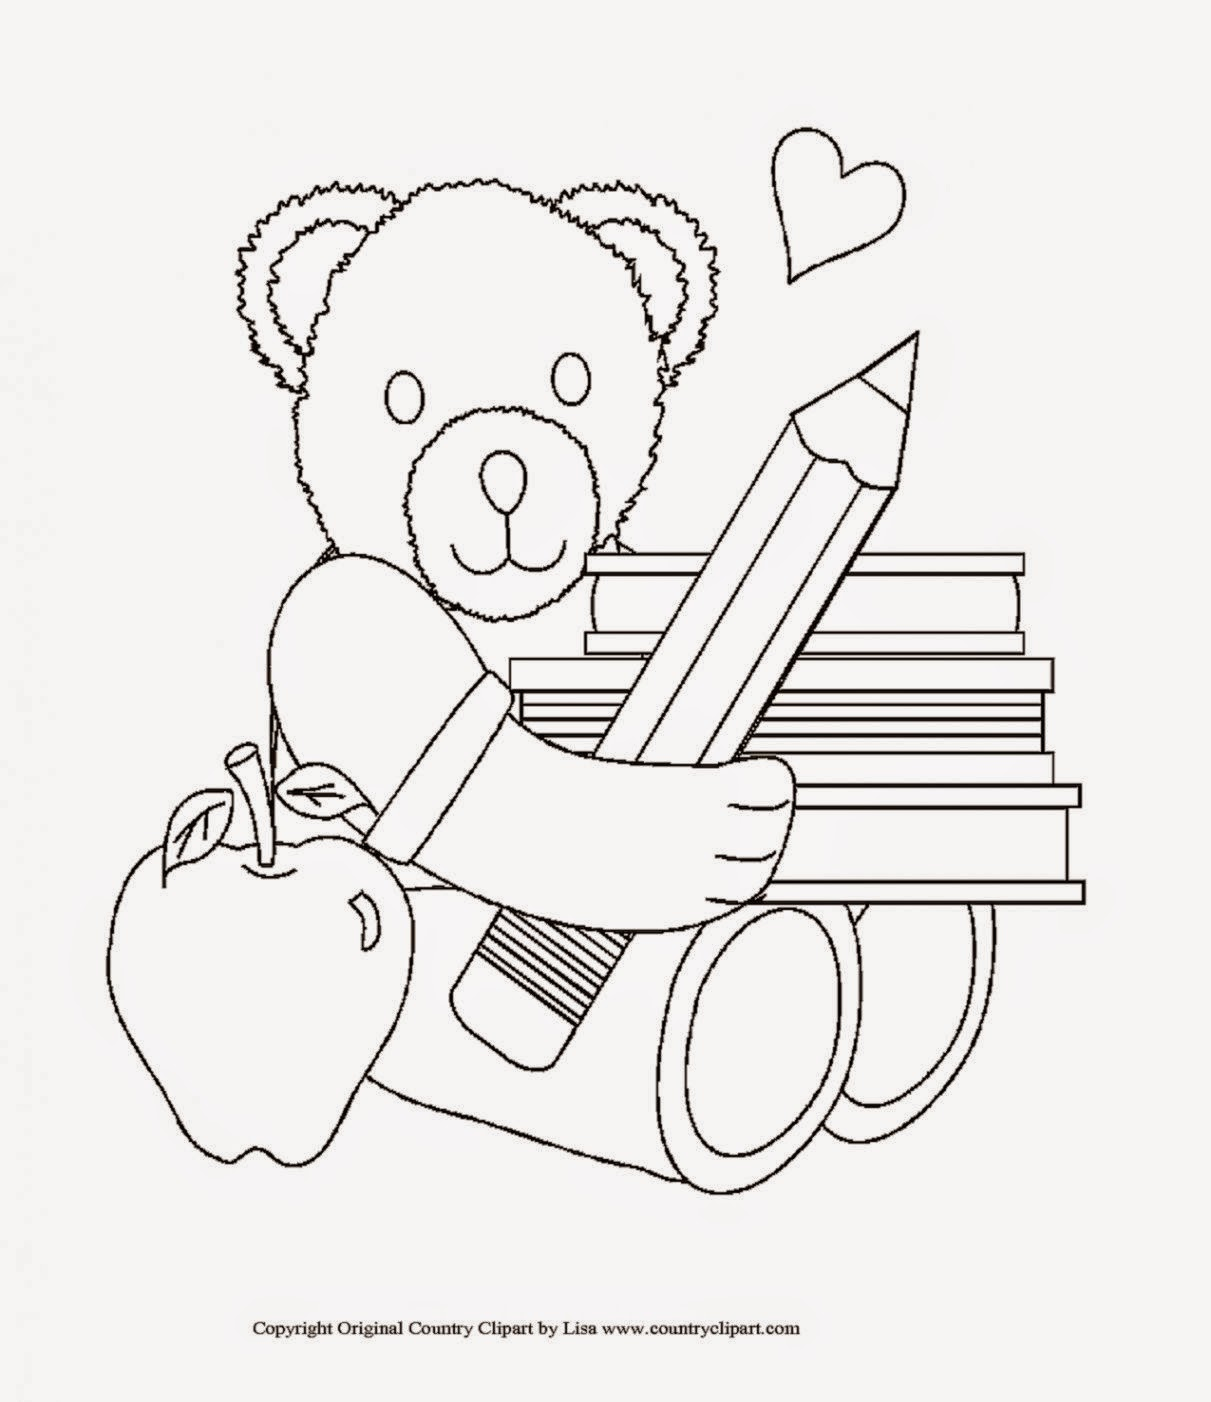 First Day Of School Coloring Sheet Free Coloring Sheet Day Of School Coloring Pages